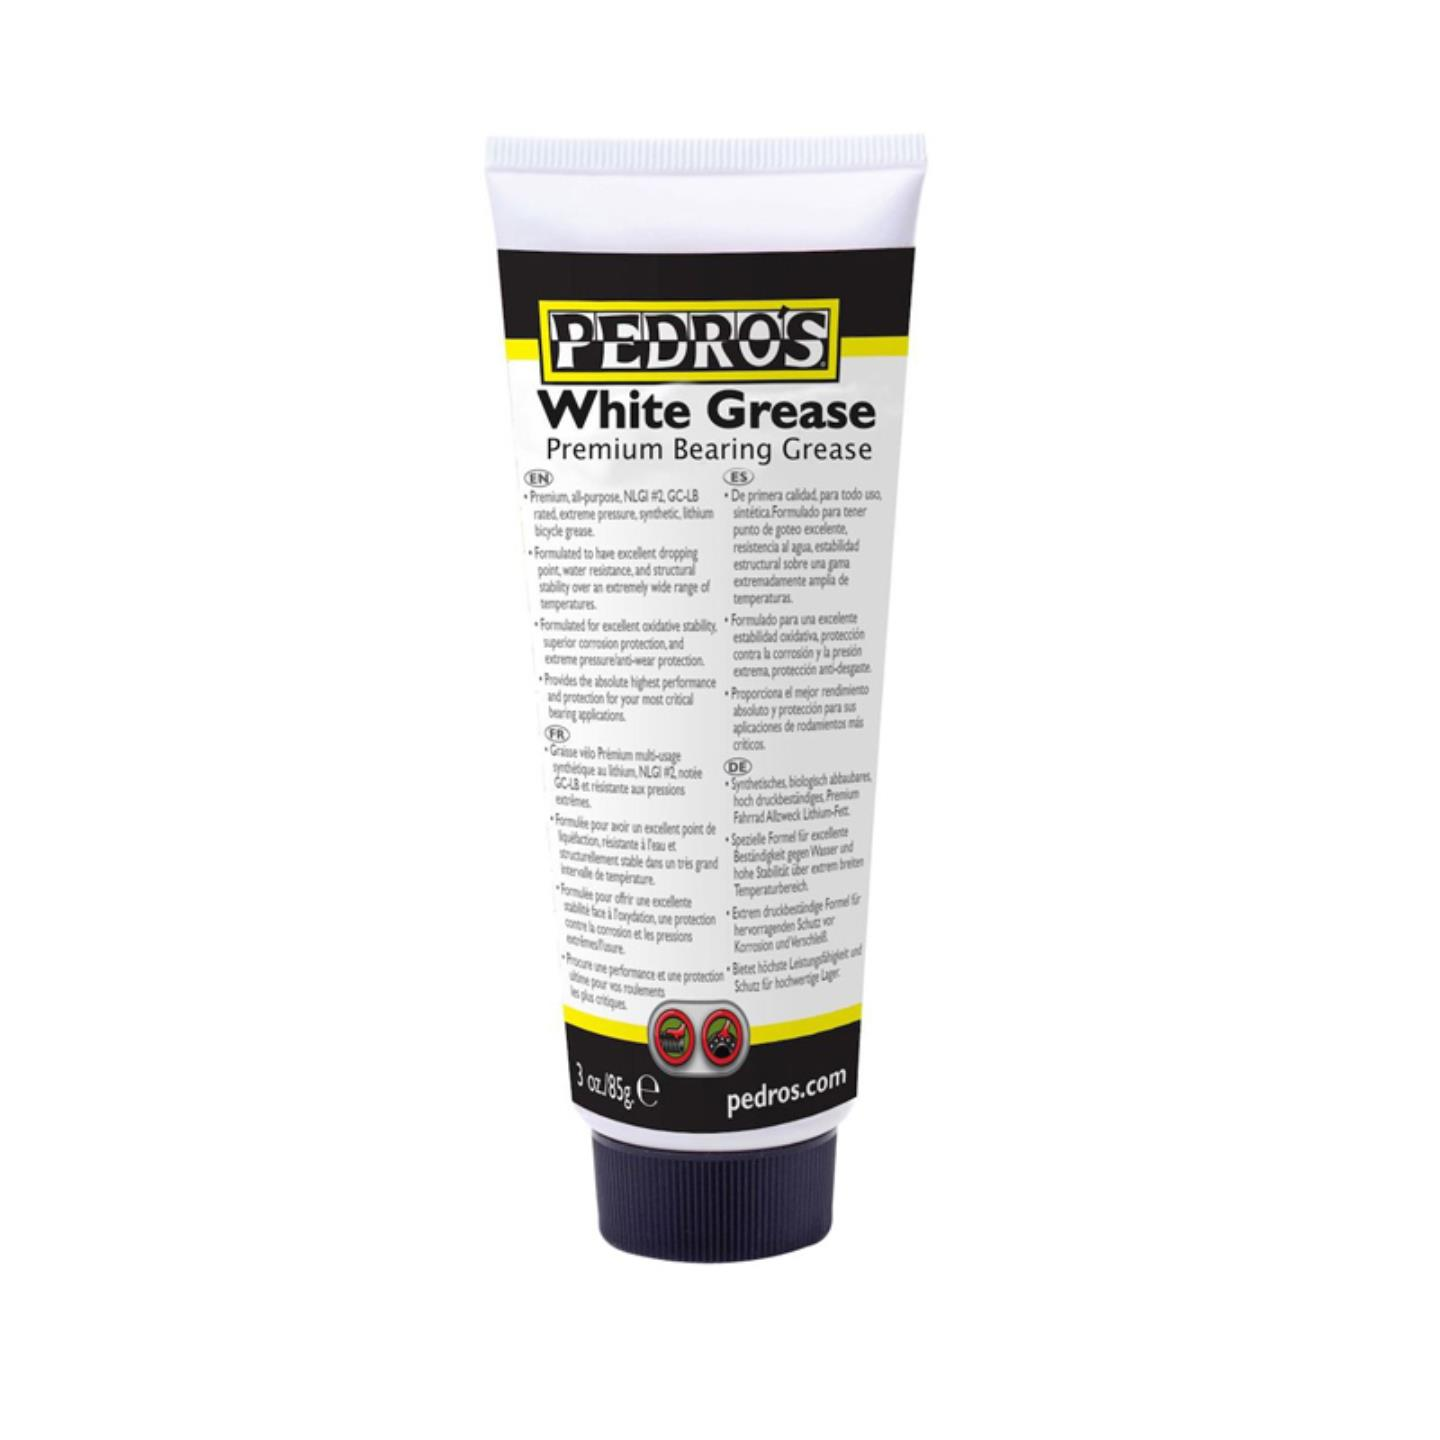 Pedros White Grease 85g